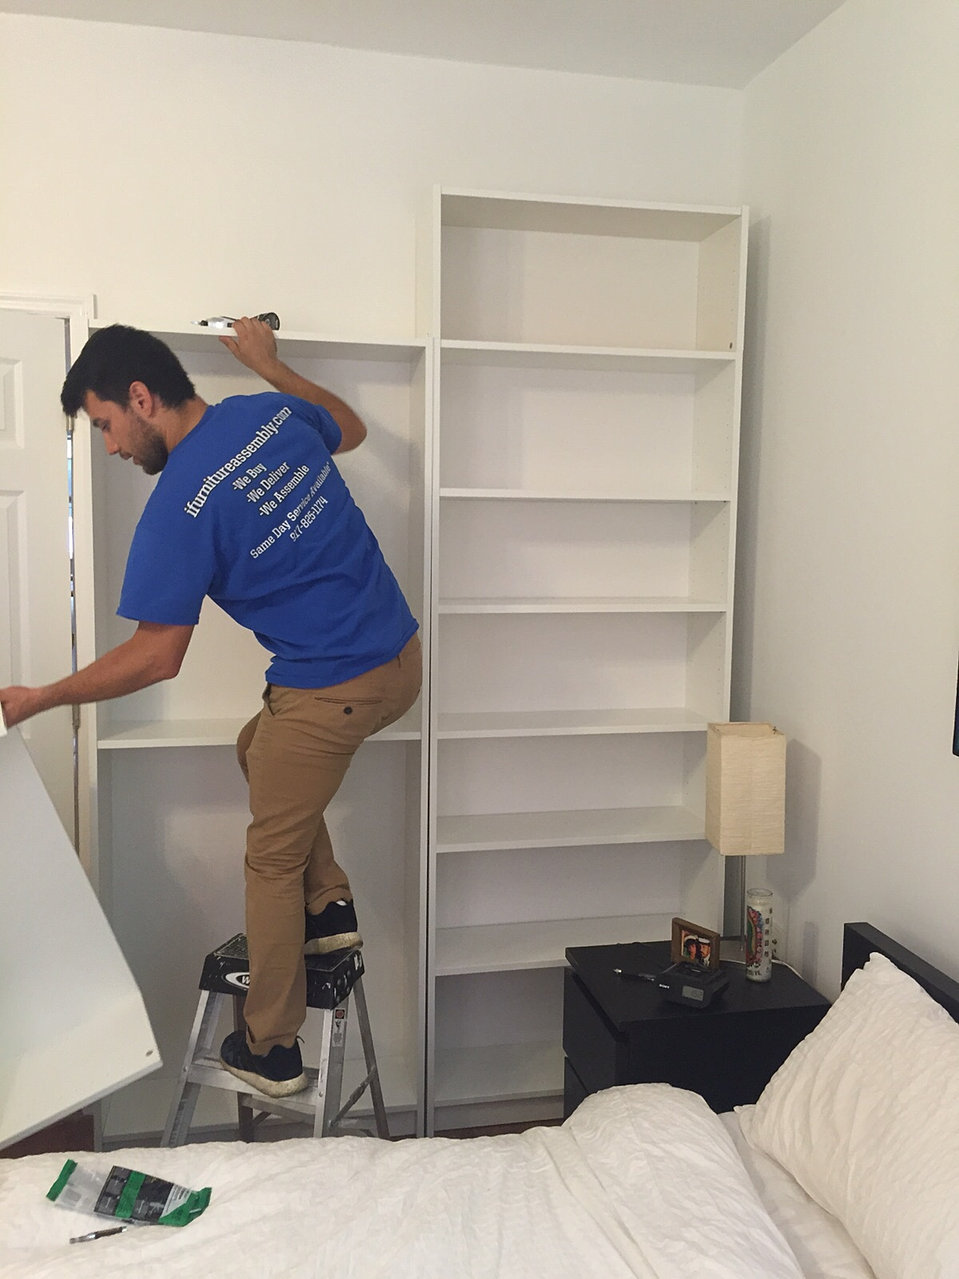 Ikea furniture delivery and assembly service in nyc for Ikea assembly support phone number